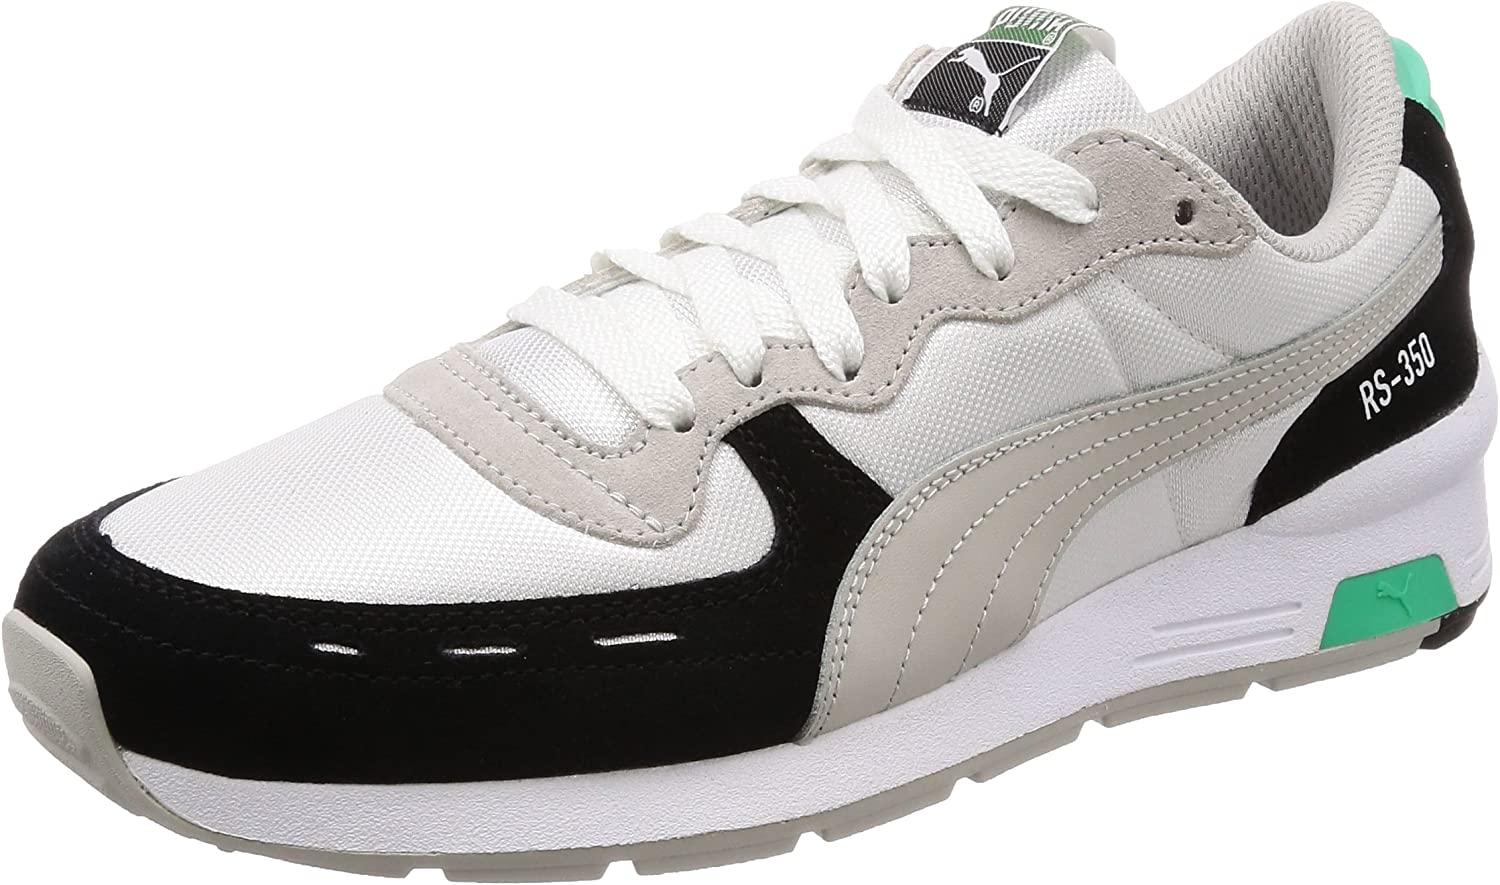 procedimiento oficial Abuelo  Puma Sneakers rs-350 re-Invention 367914 01: Amazon.co.uk: Sports & Outdoors